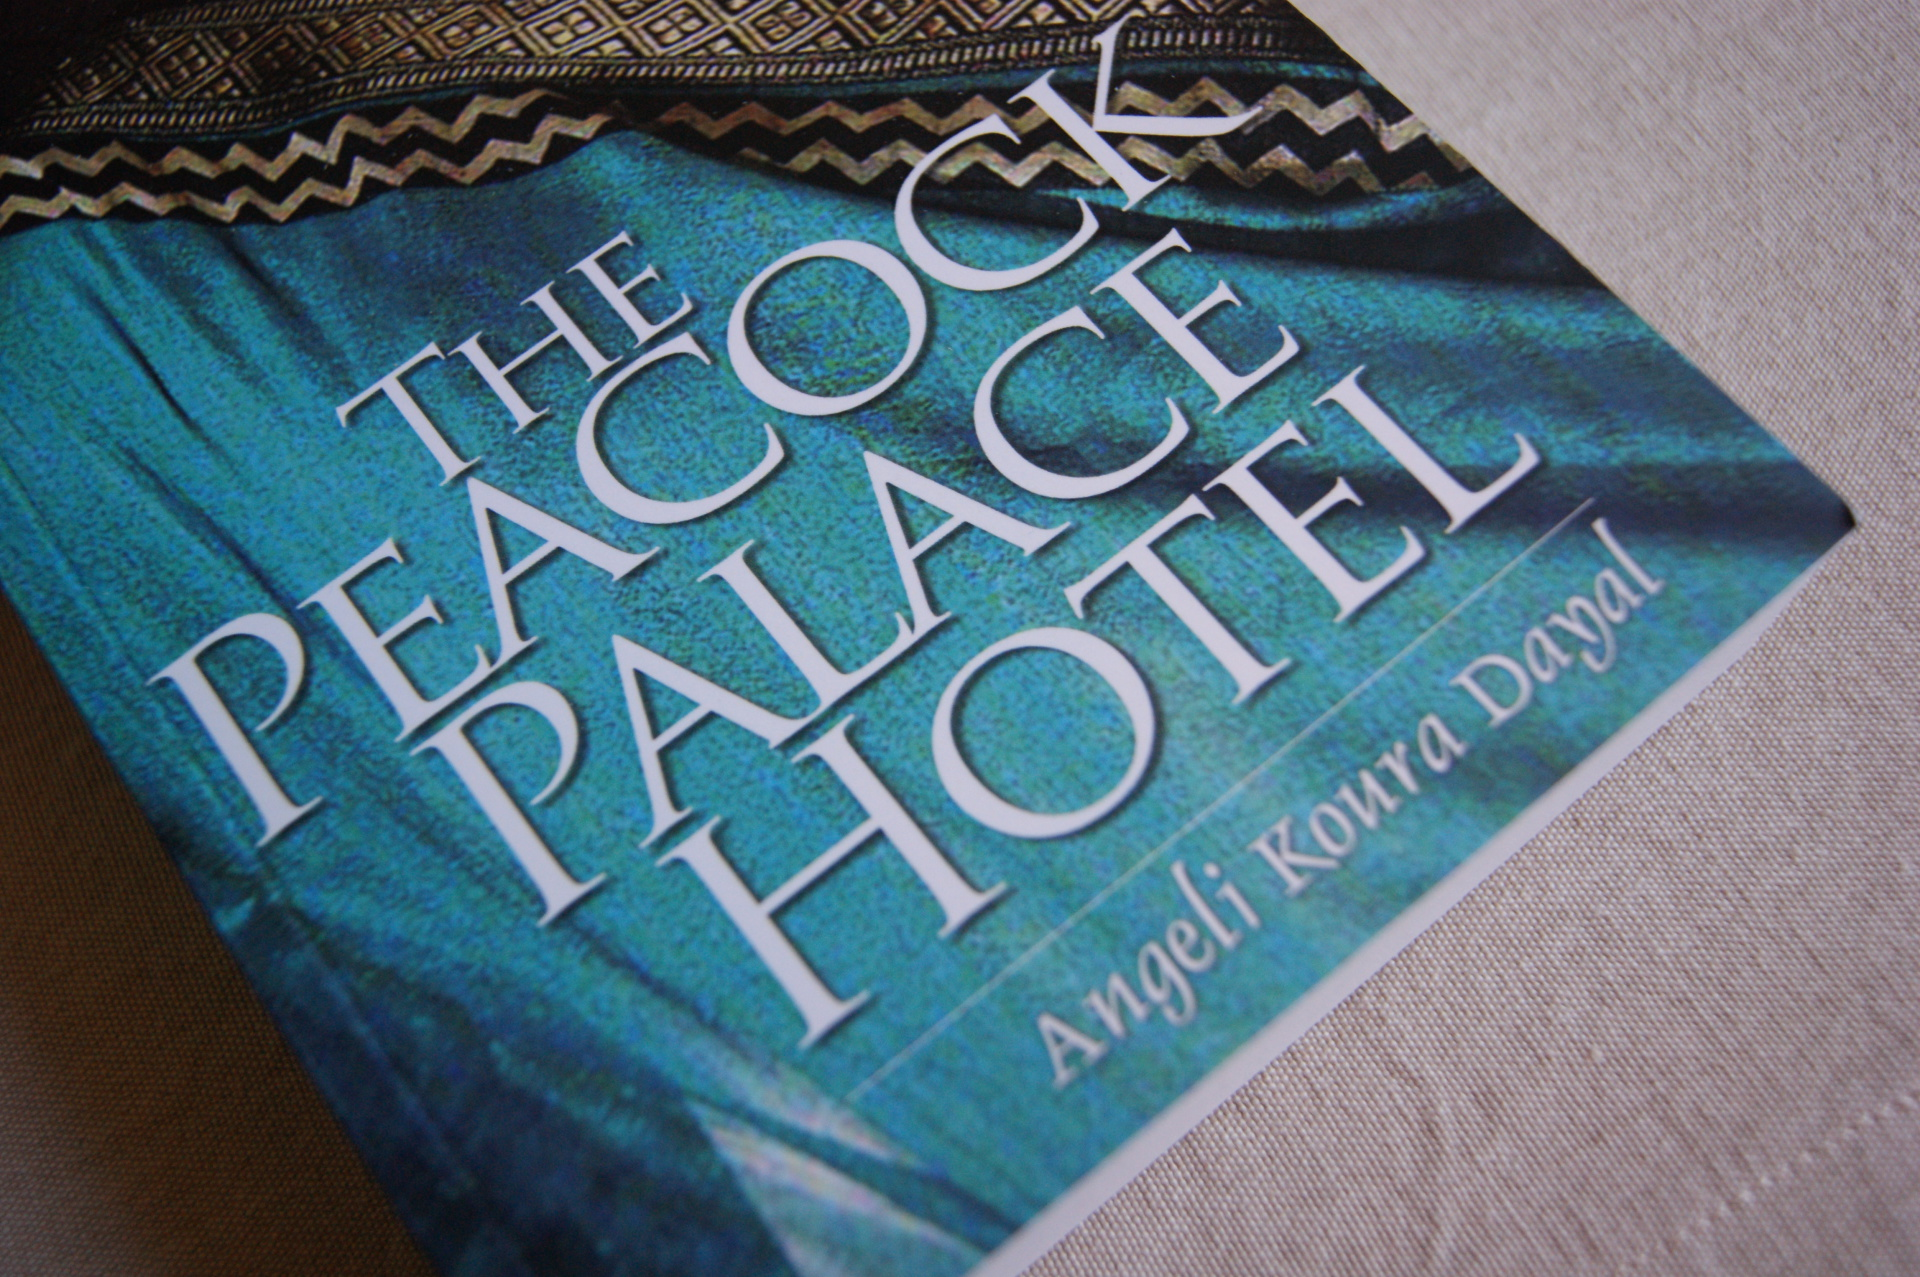 The Peacock Palace Hotel by Angeli Koura Dayal